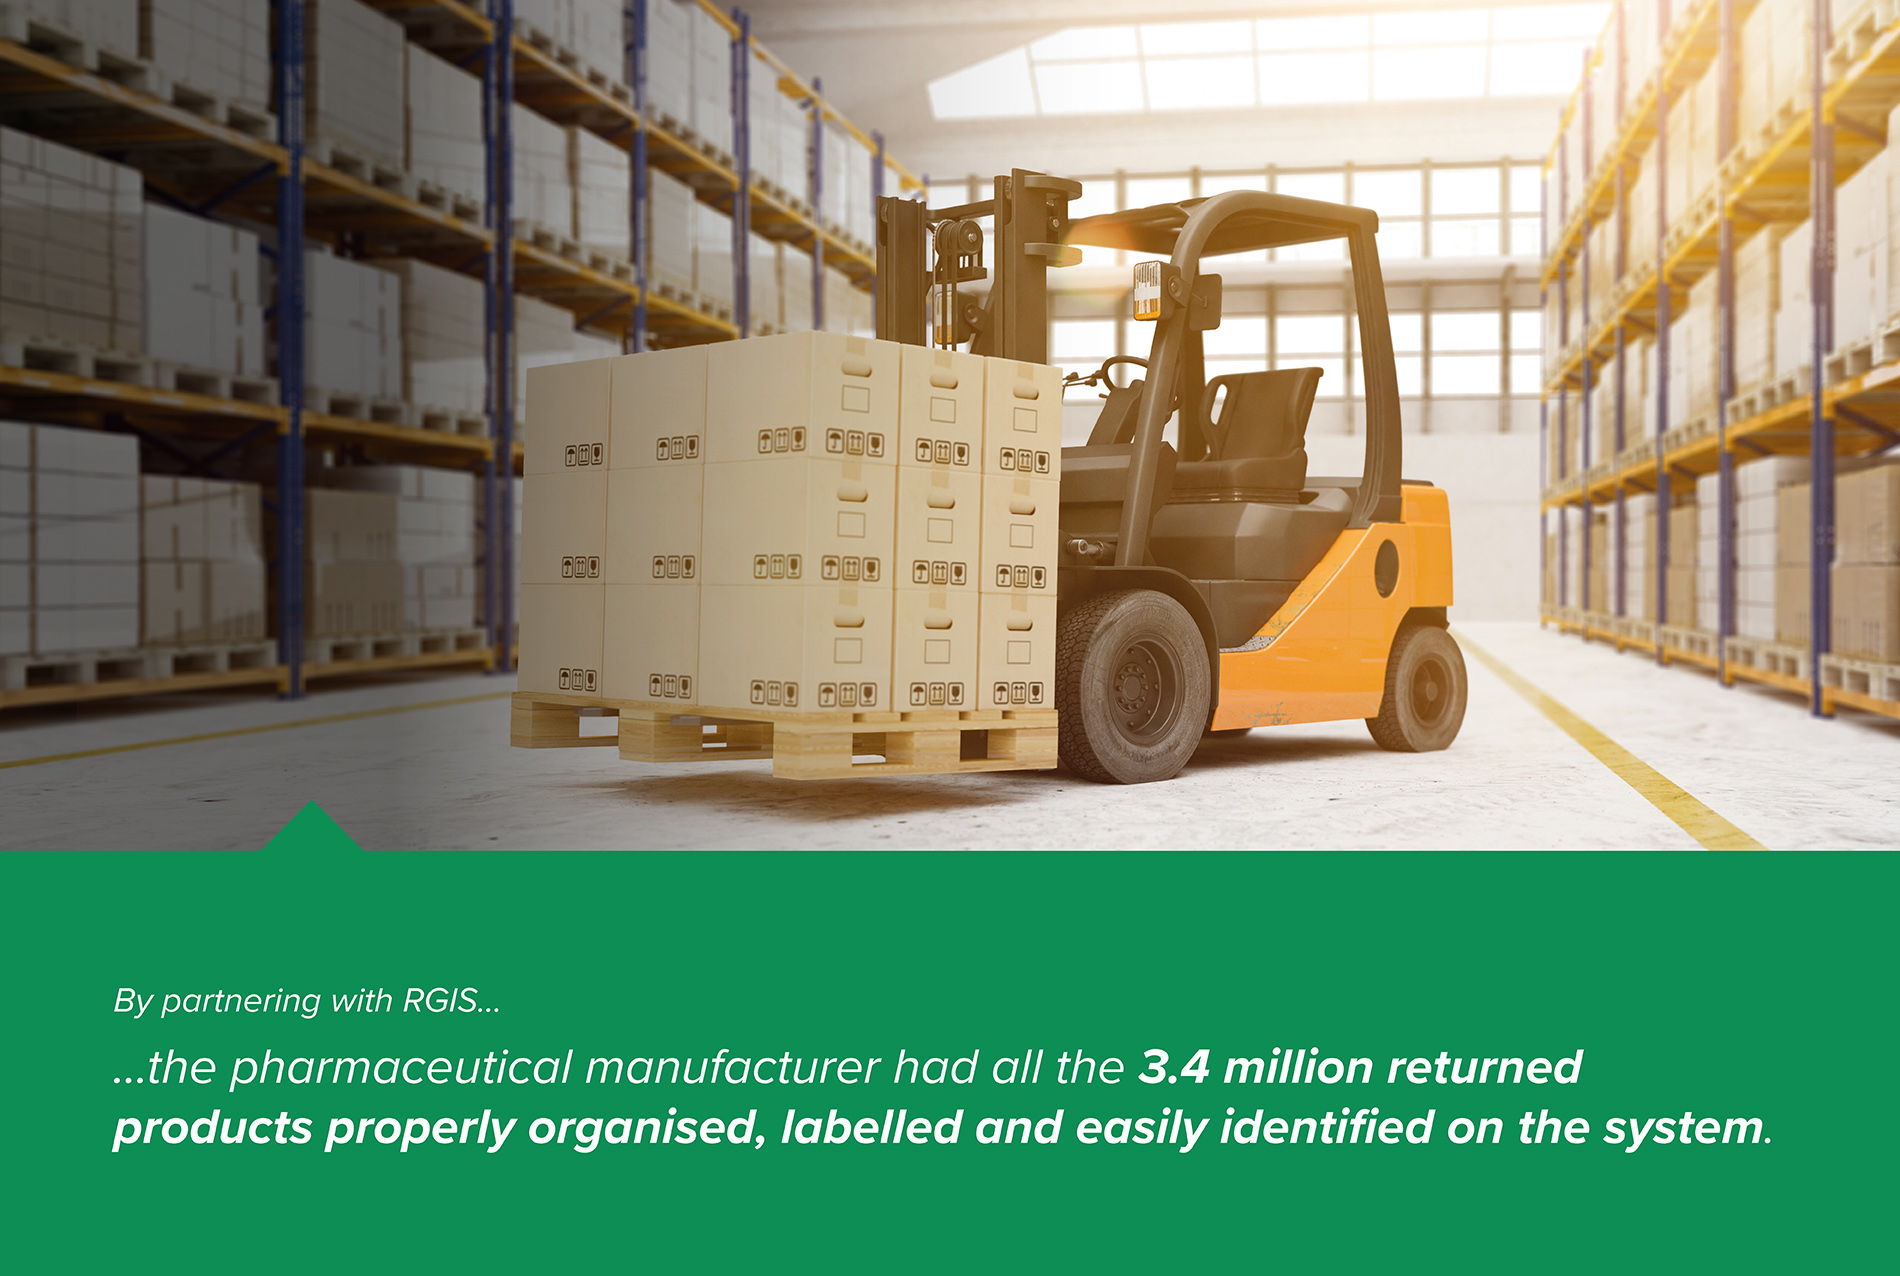 Organisation and Labelling of Returned Products in Warehouse